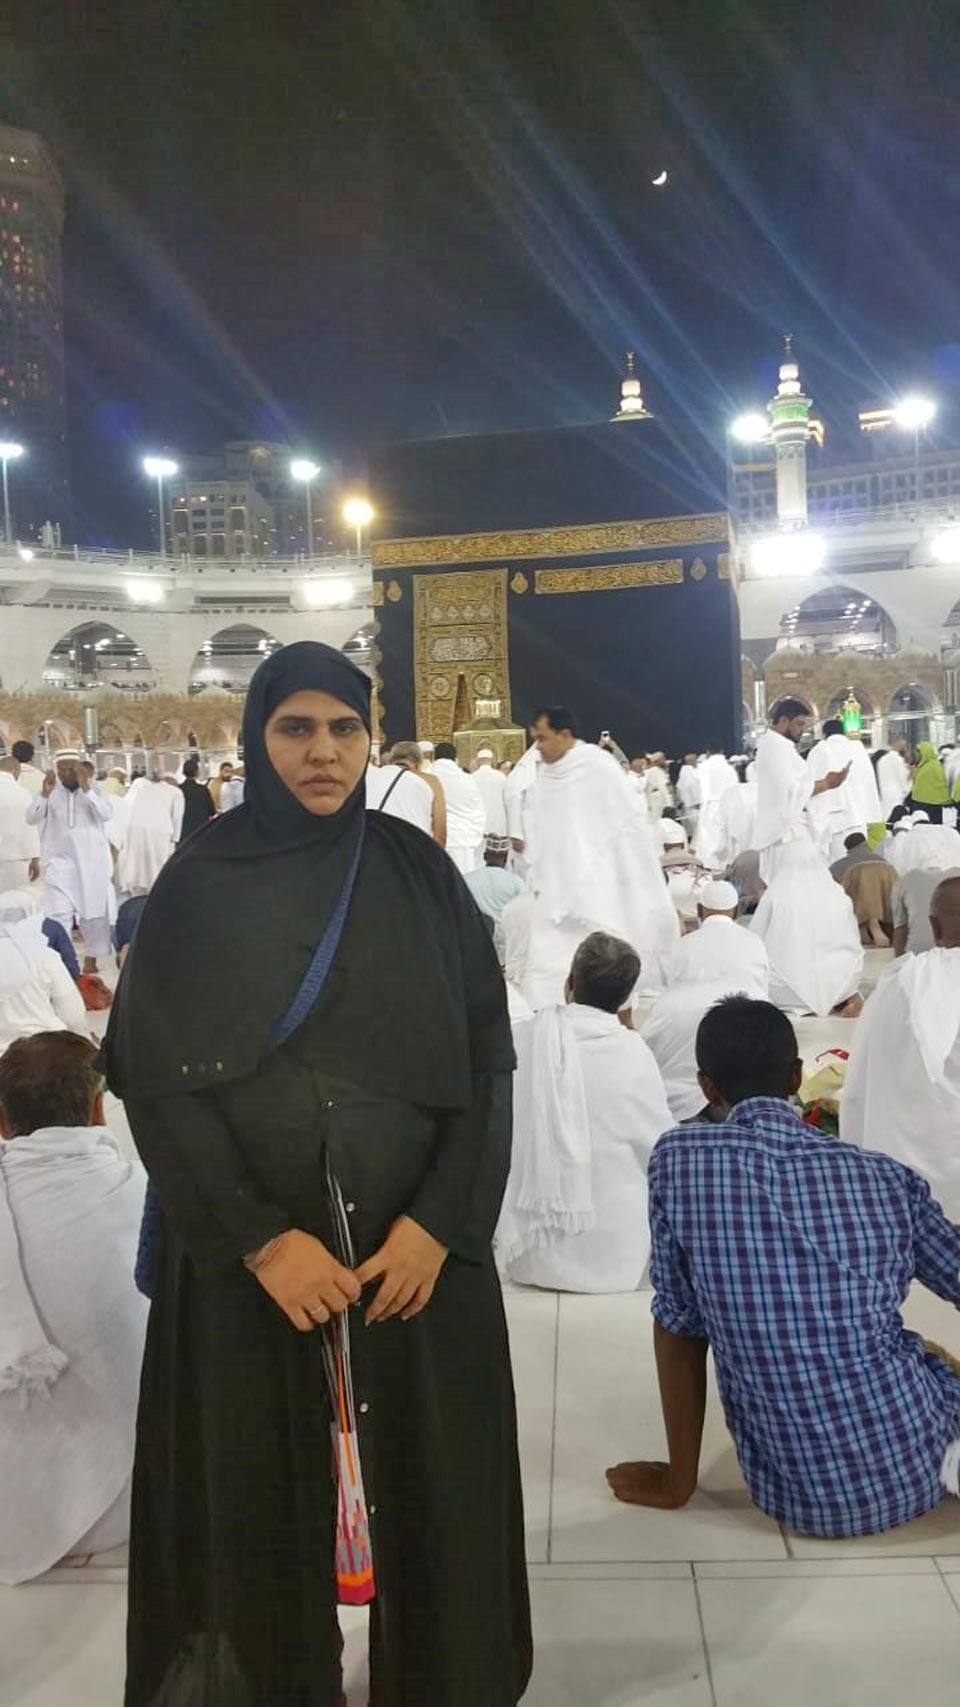 Hina Sultan in Matab after completing her Taw'aaf